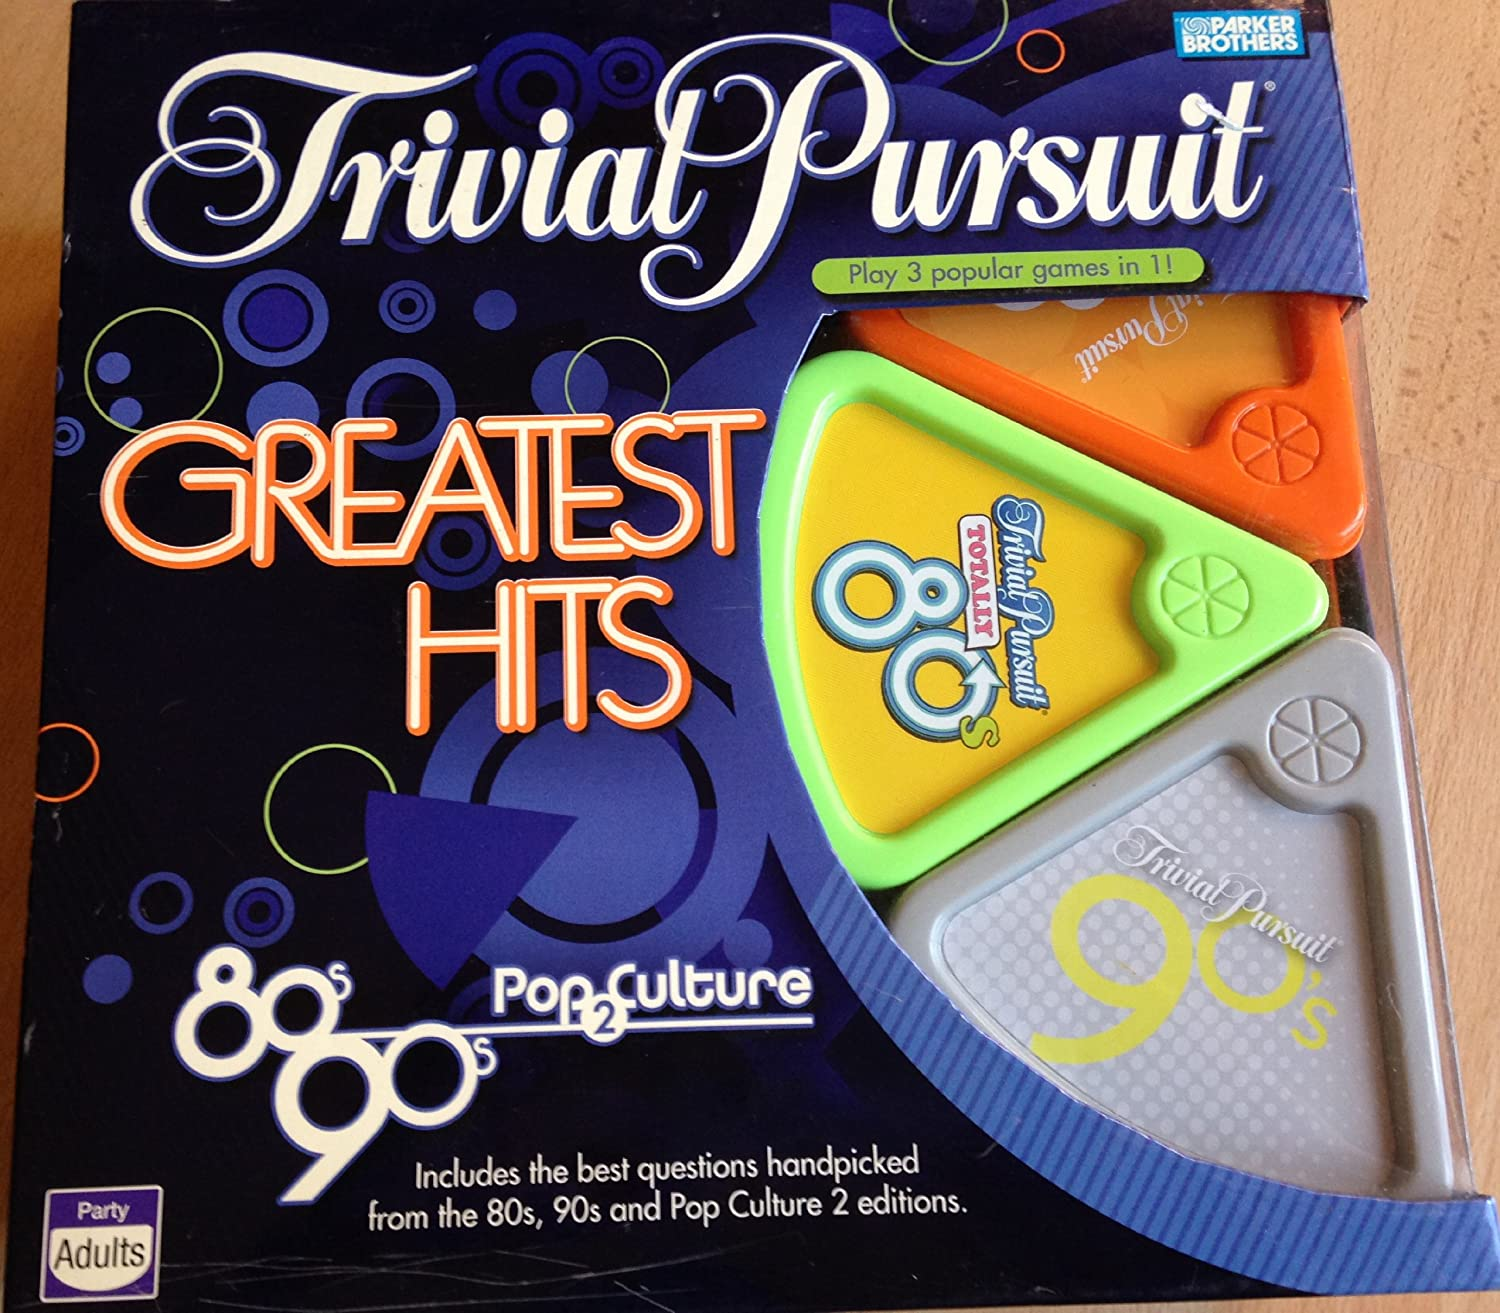 Trivial Pursuit – Greatest Hits (80's, 90's & Pop Culture) Trivia Board Game